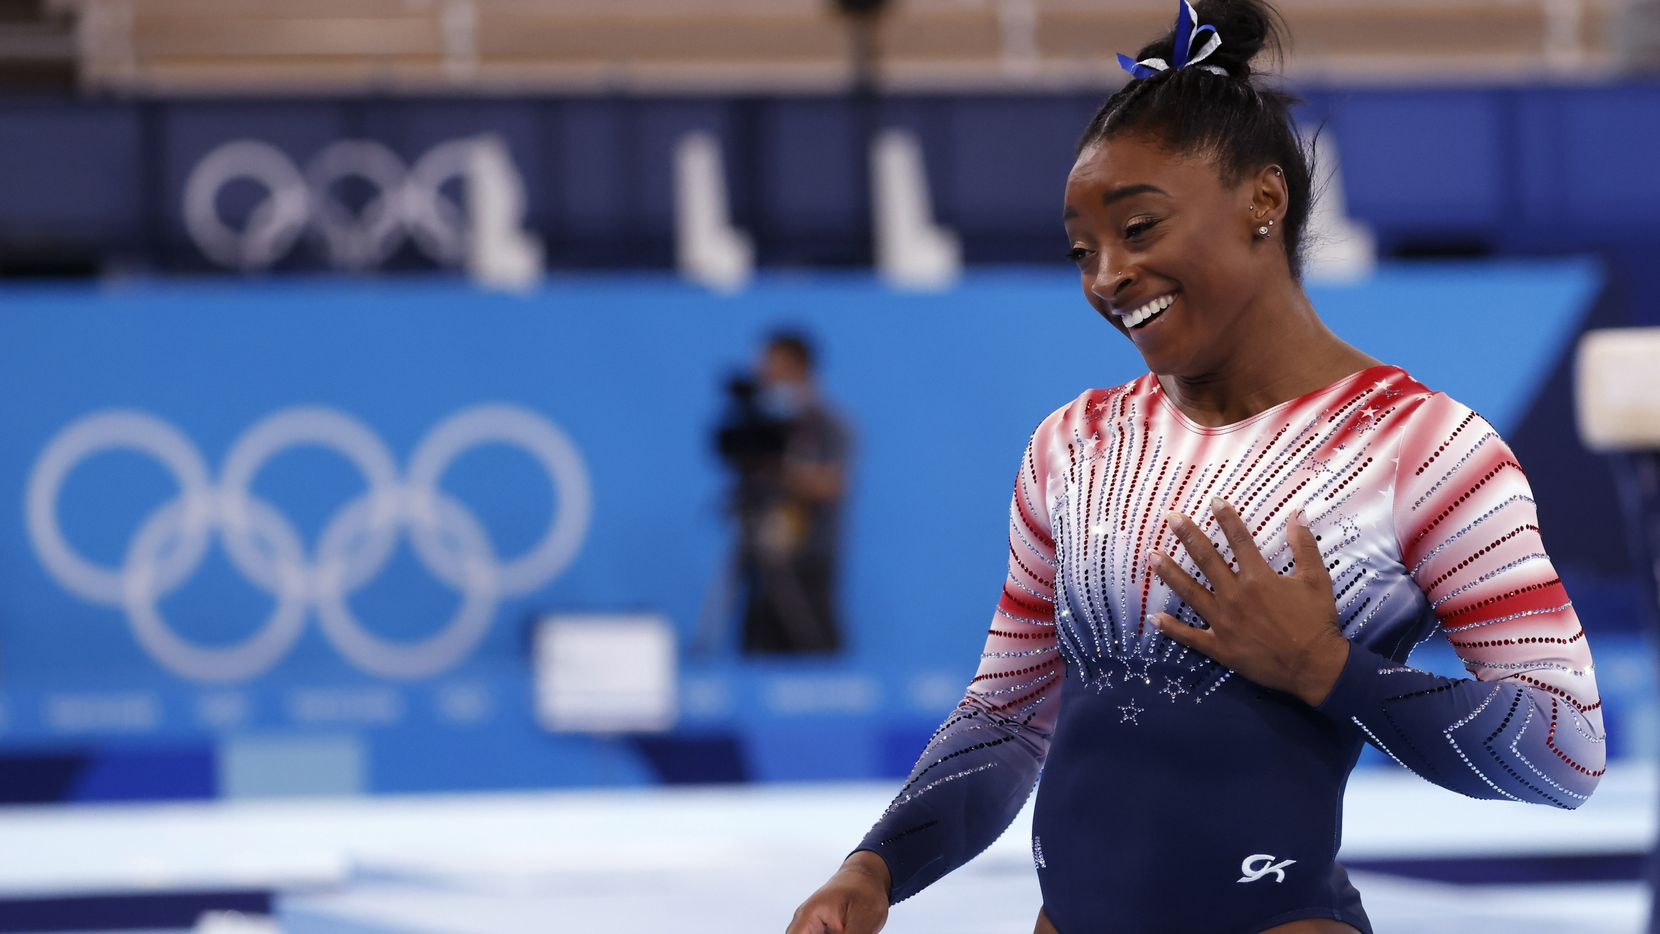 USA's Simone Biles after competing in the women's balance beam final at the postponed 2020 Tokyo Olympics at Ariake Gymnastics Centre, on Tuesday, August 3, 2021, in Tokyo, Japan. Biles placed third in the event, earning a bronze medal.